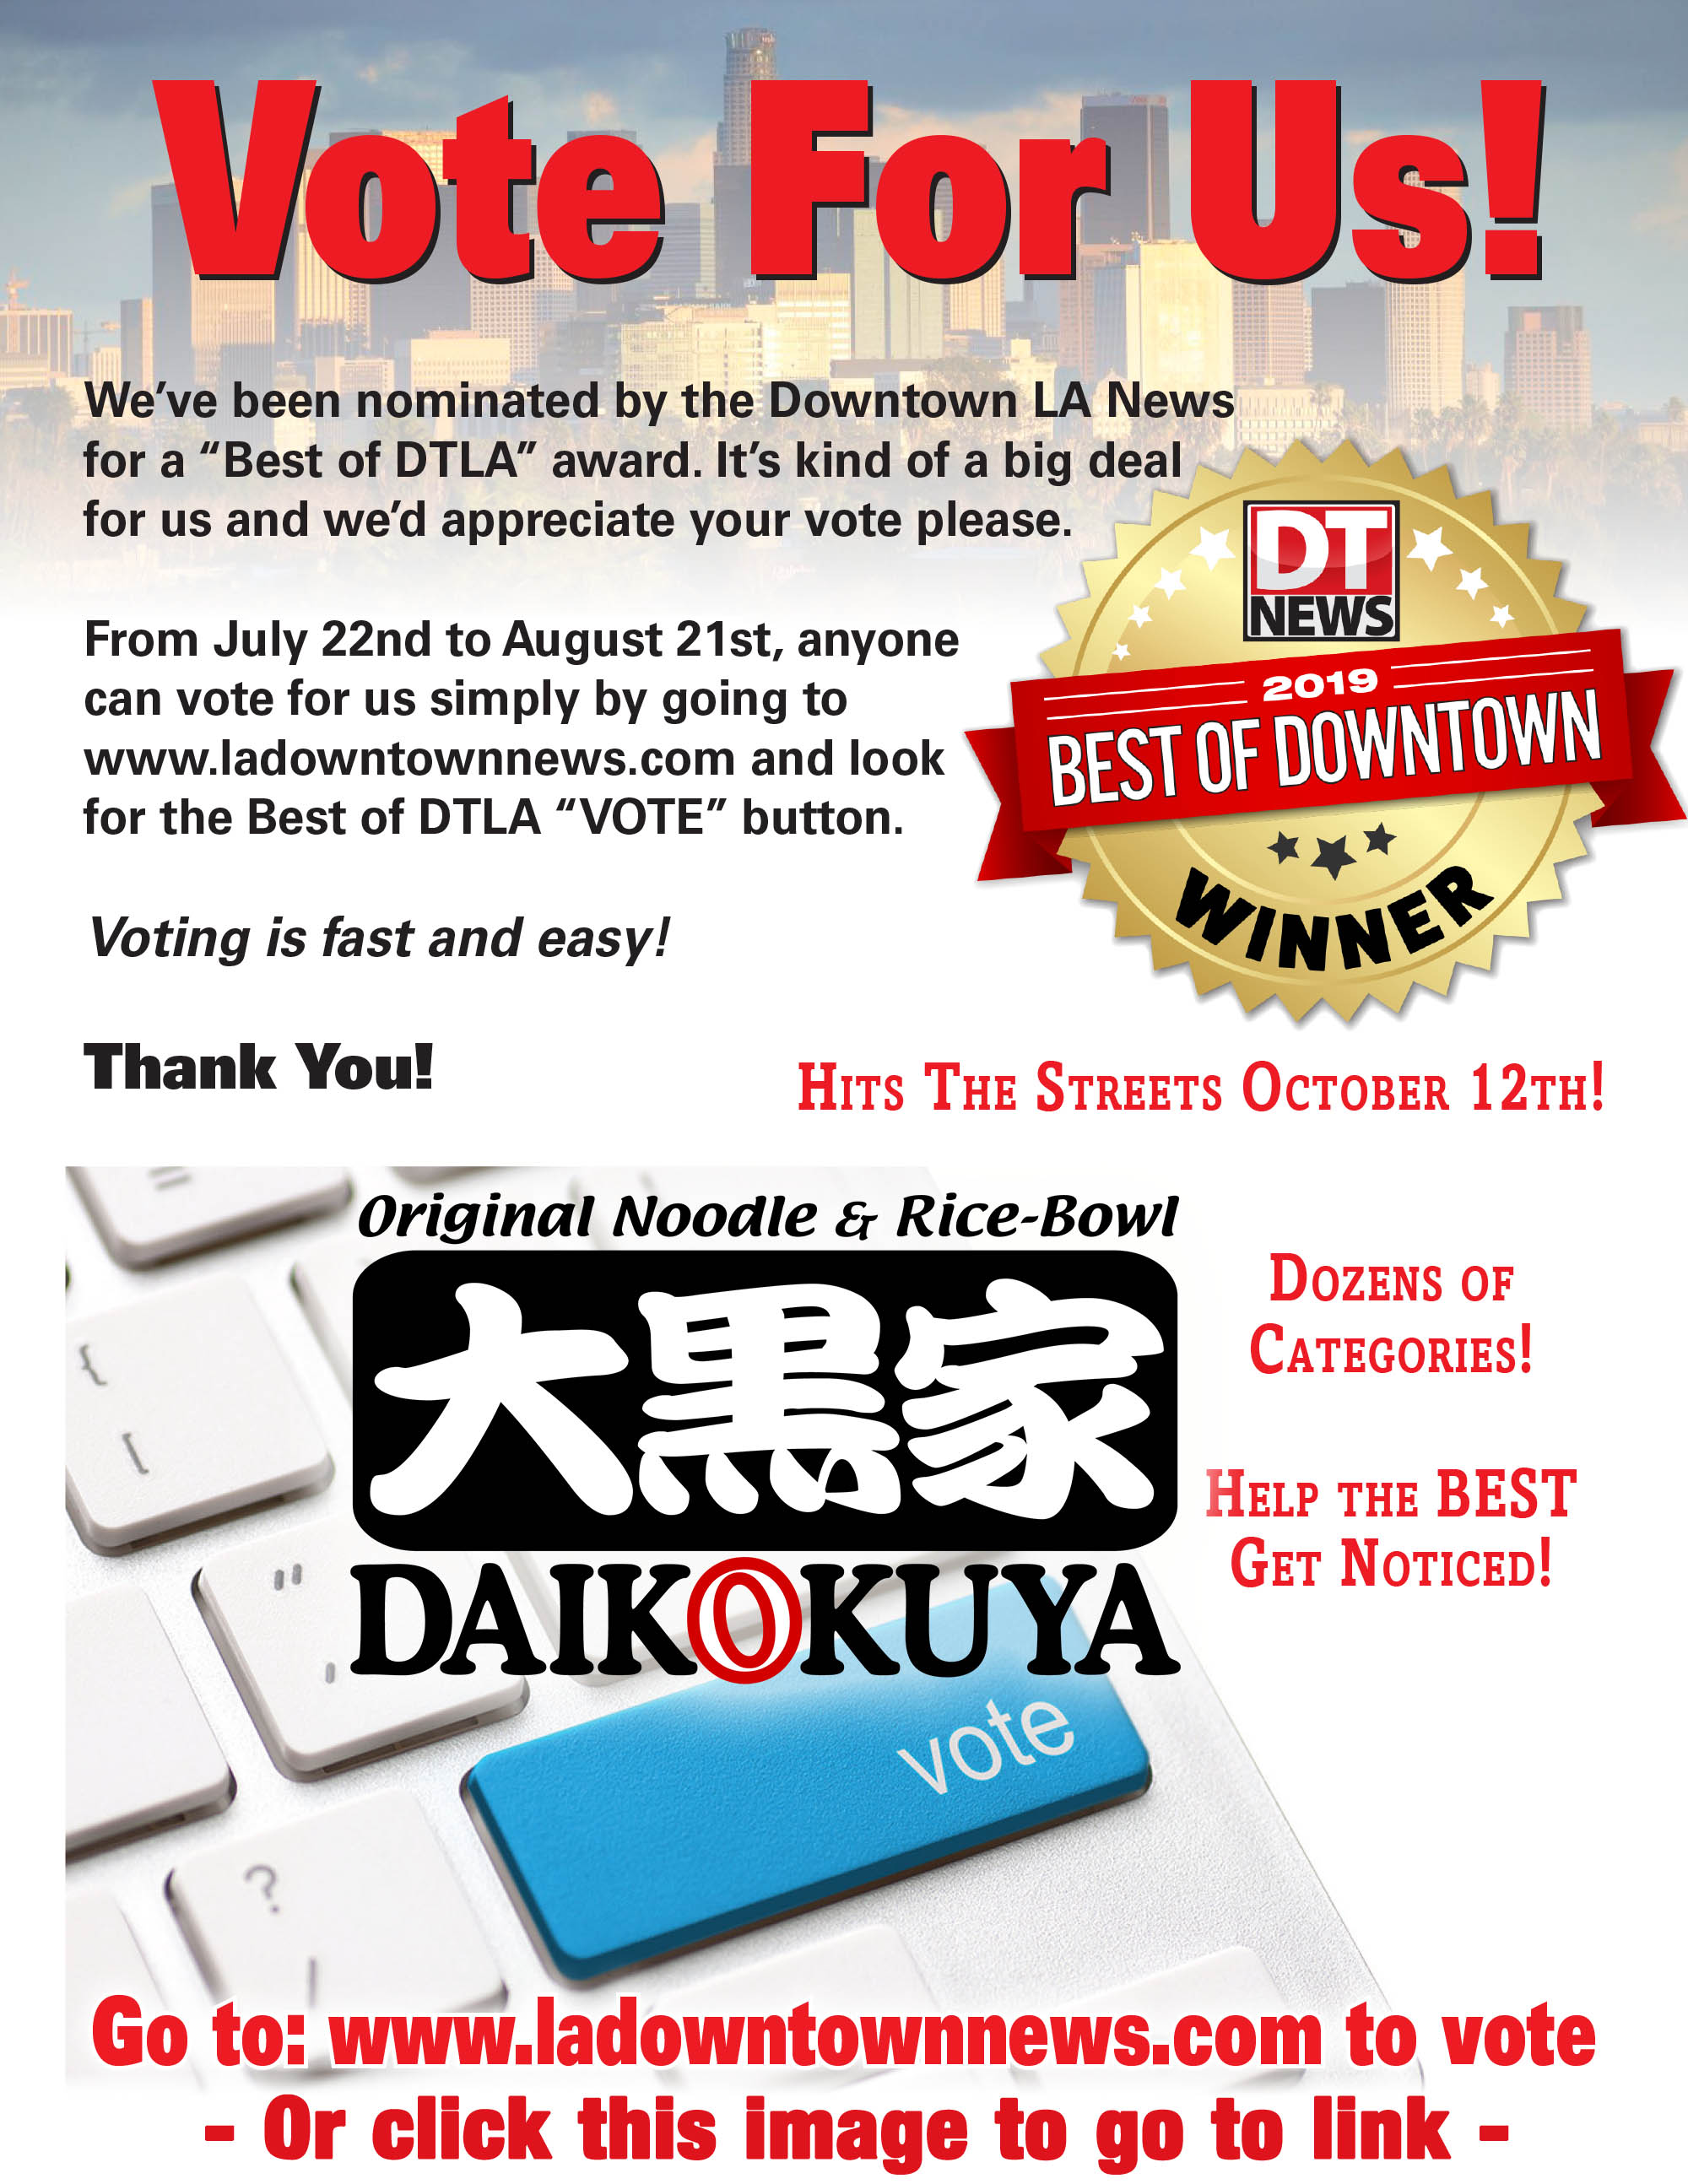 Vote for us! DT News Best of Downtown Los Angeles